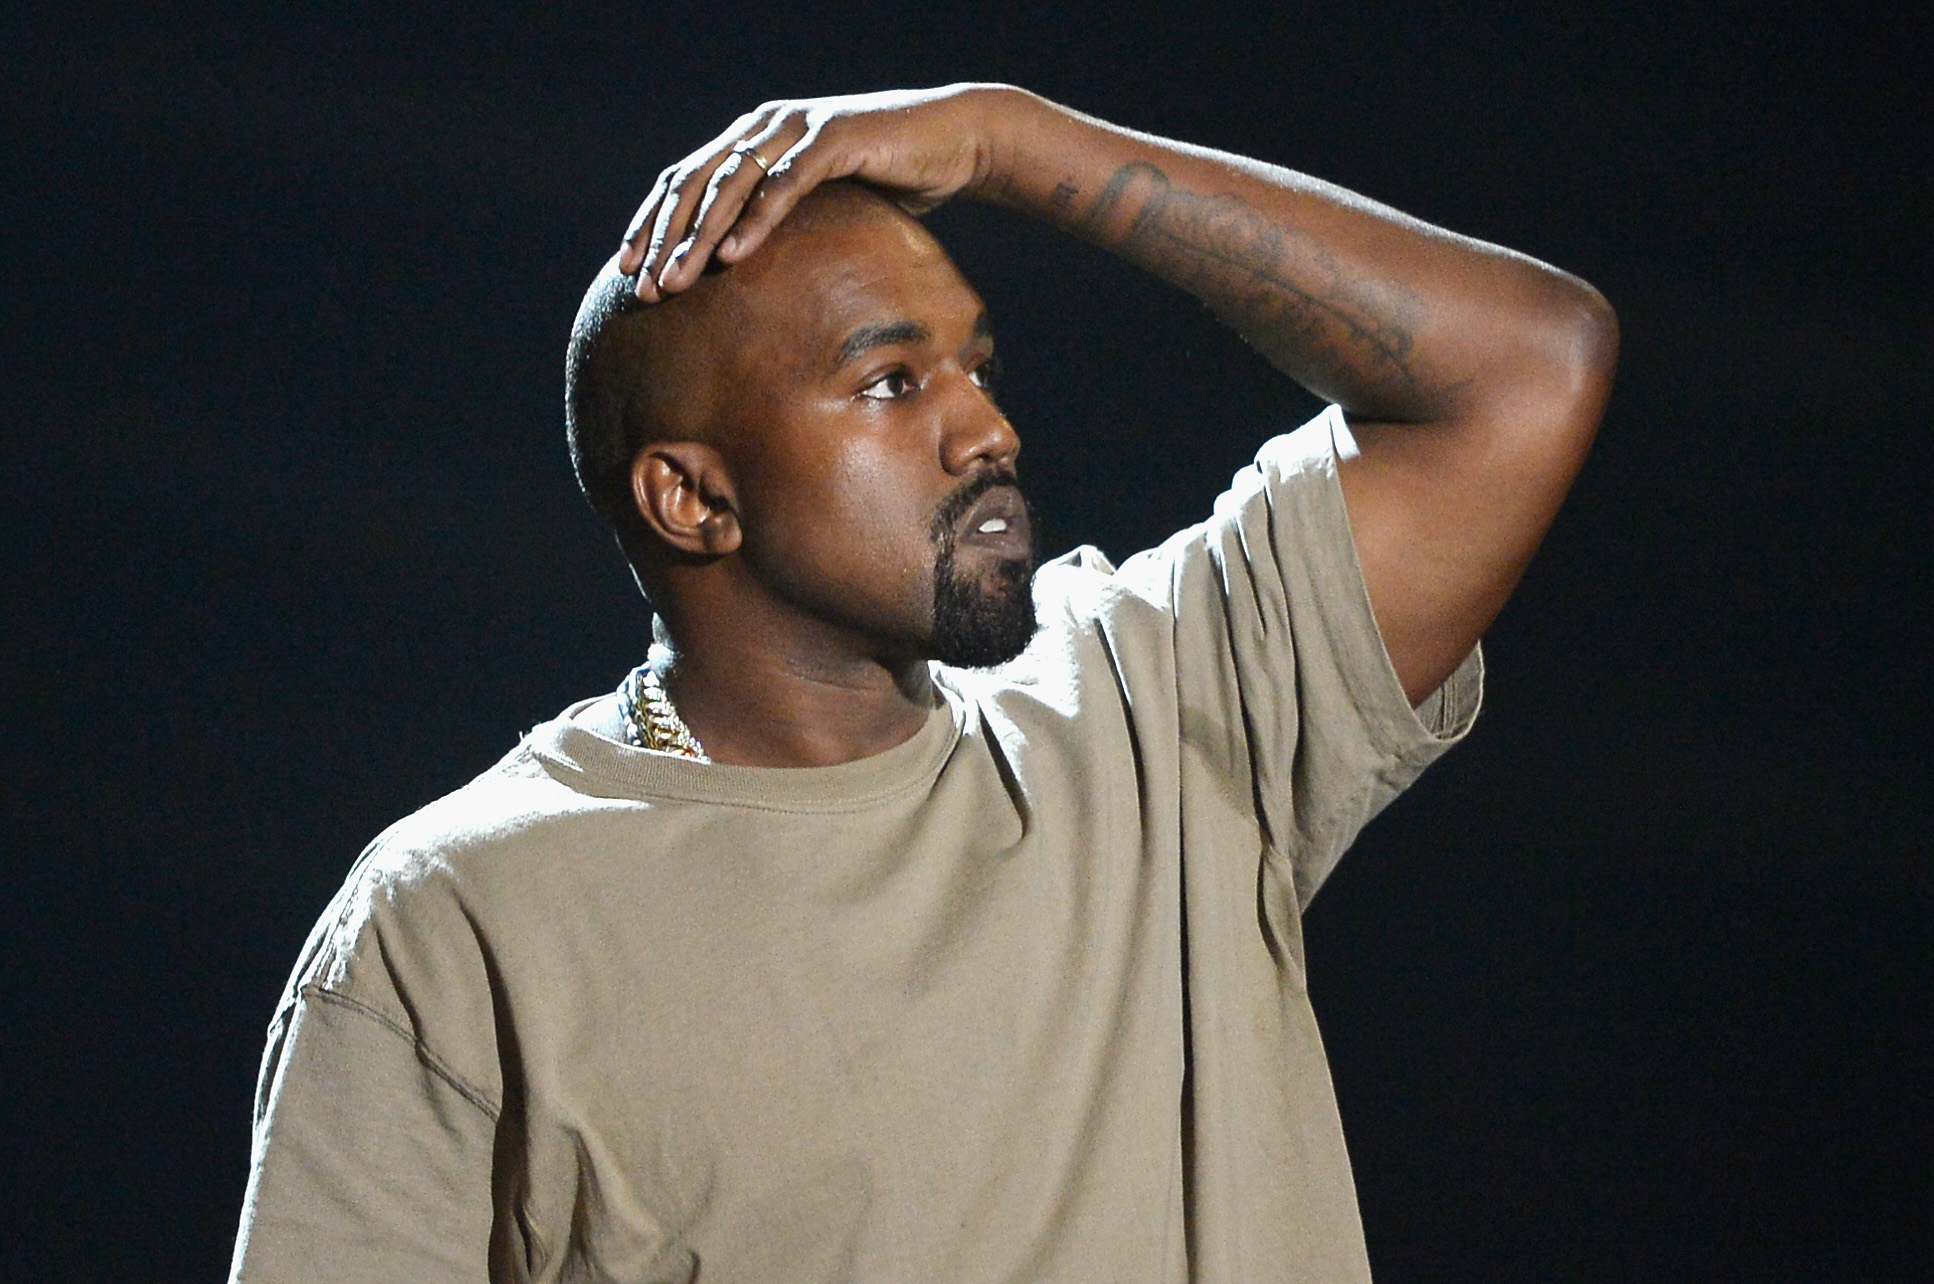 Kanye West to release new album this week